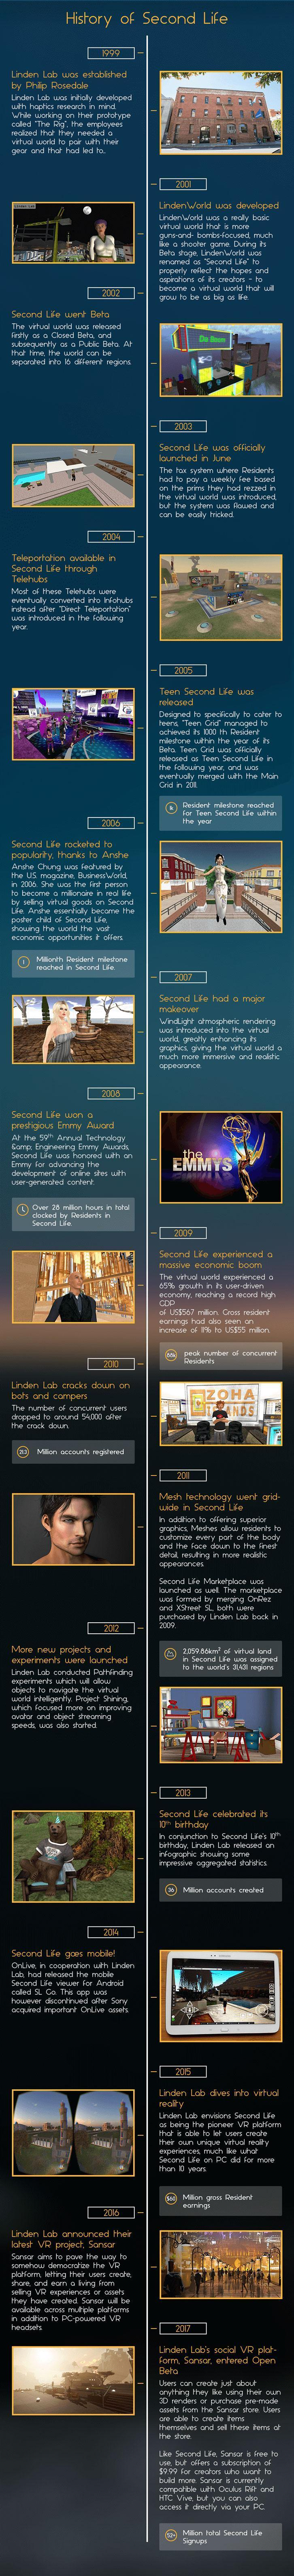 Summary of The History of Second Life - Infographic